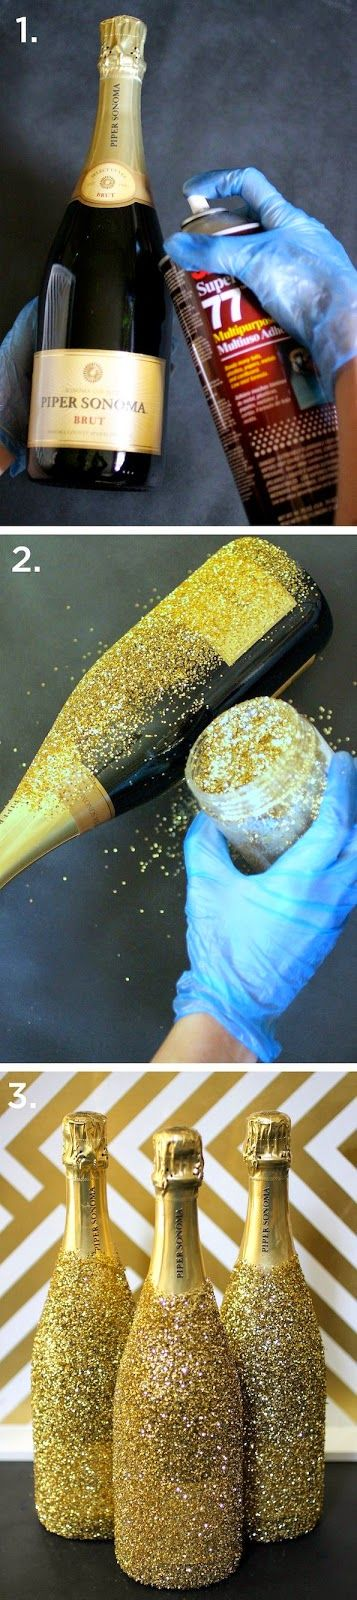 Spray on some multipurpose adhesive and add gold glitter for a festive New Year's Eve! :)